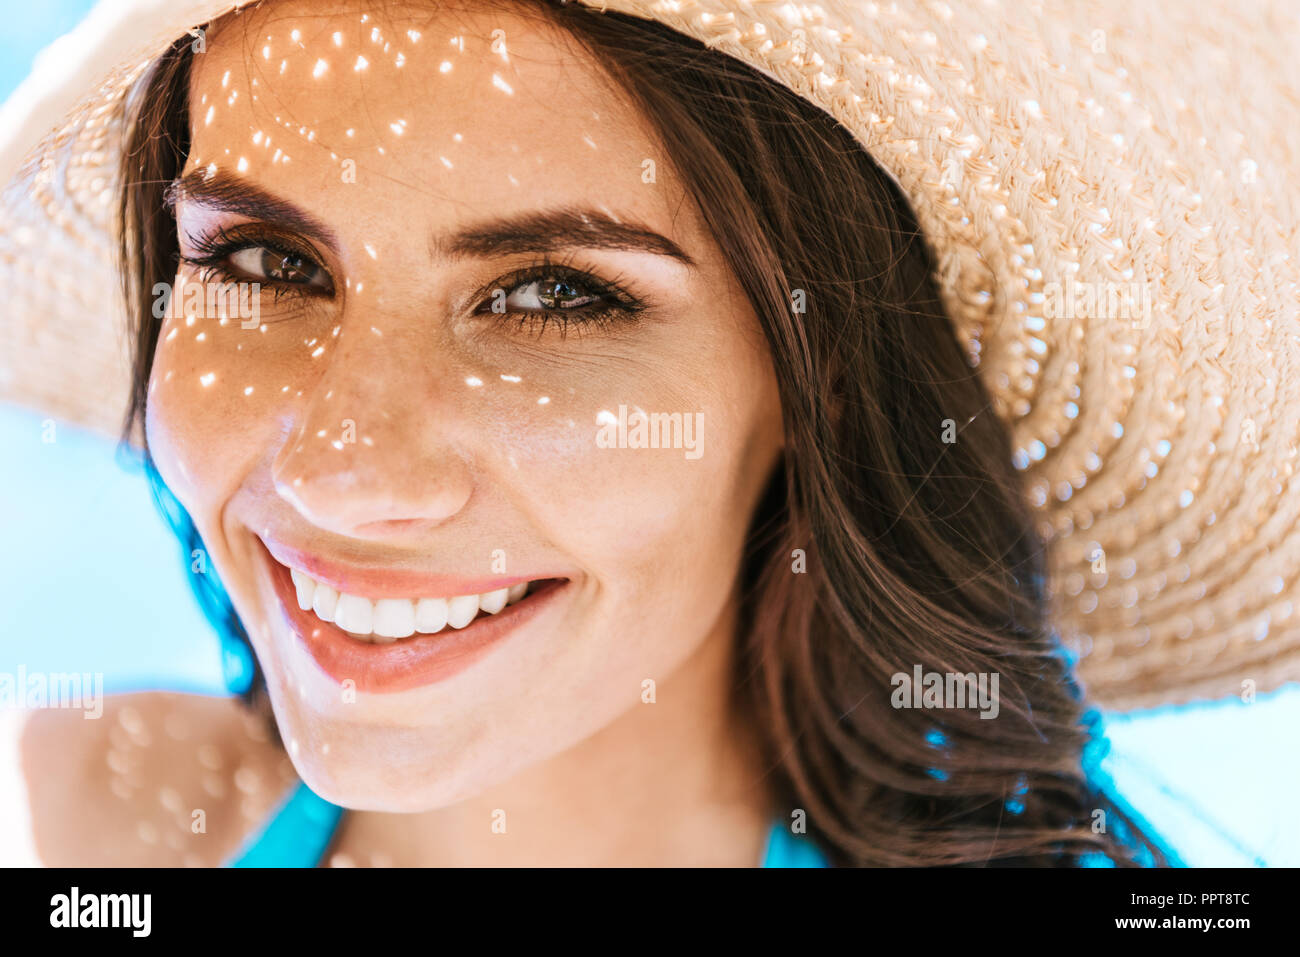 beautiful brunette woman in straw hat smiling at camera - Stock Image